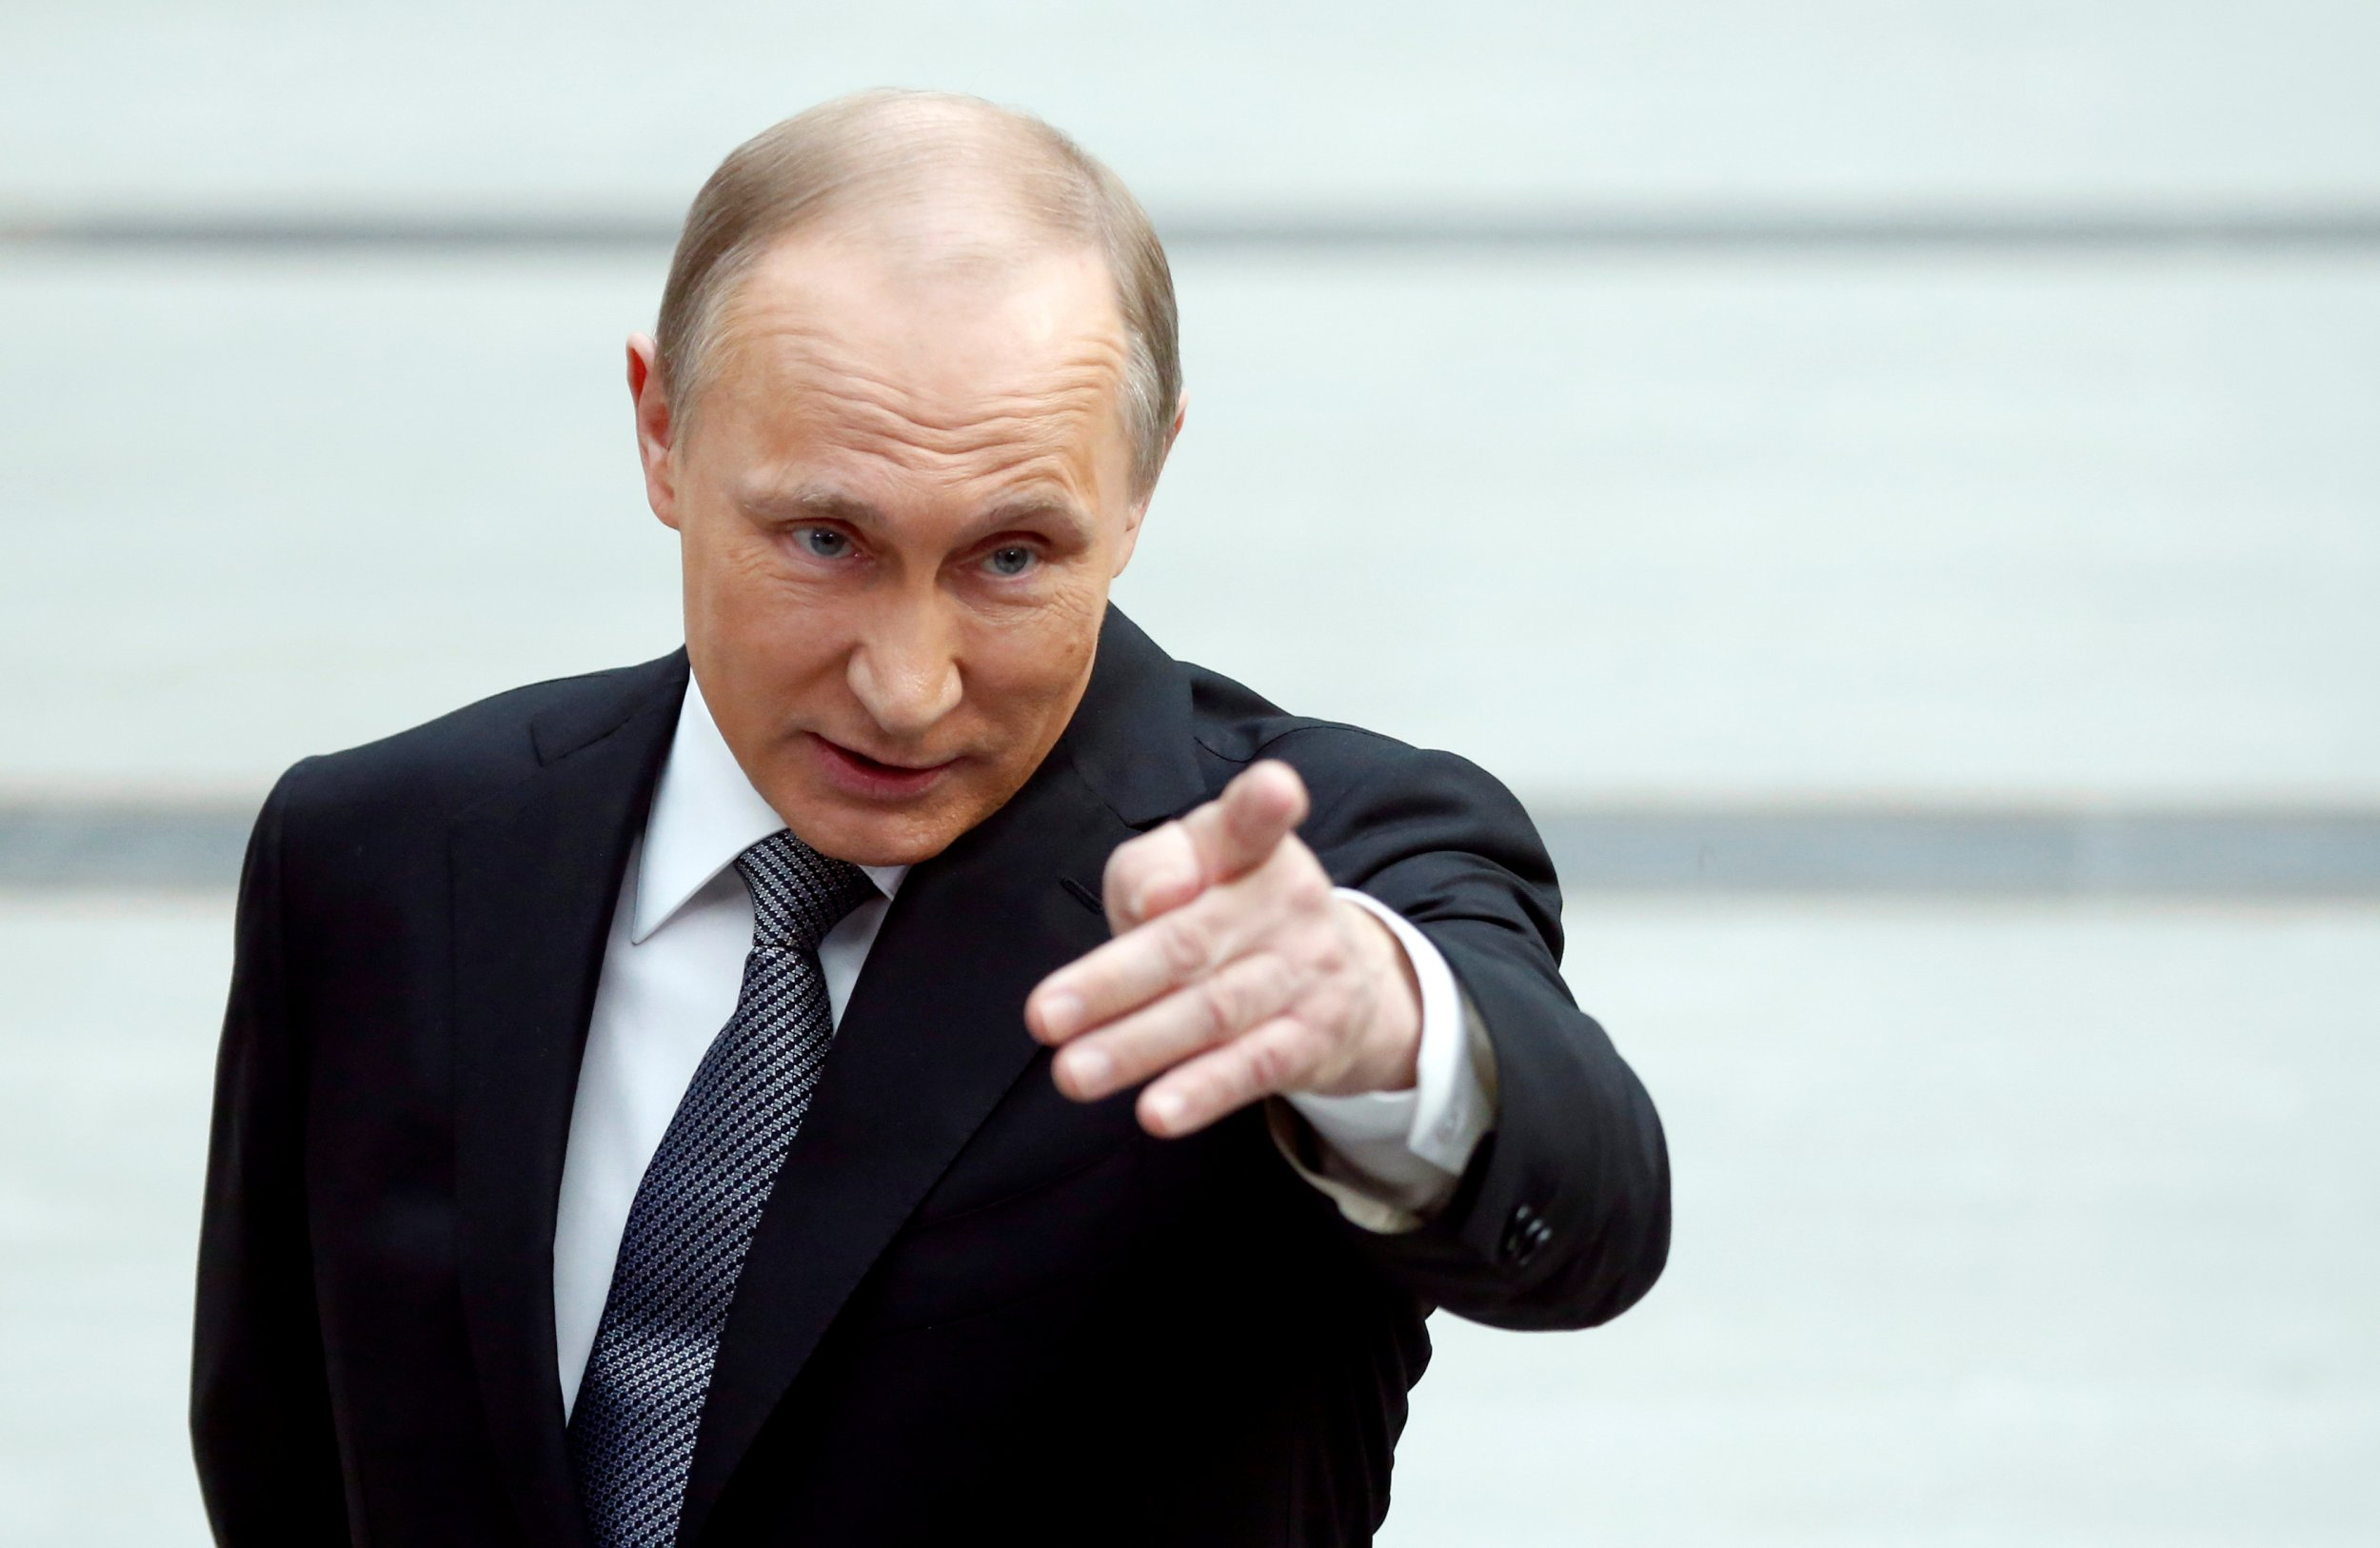 Putin points to camera